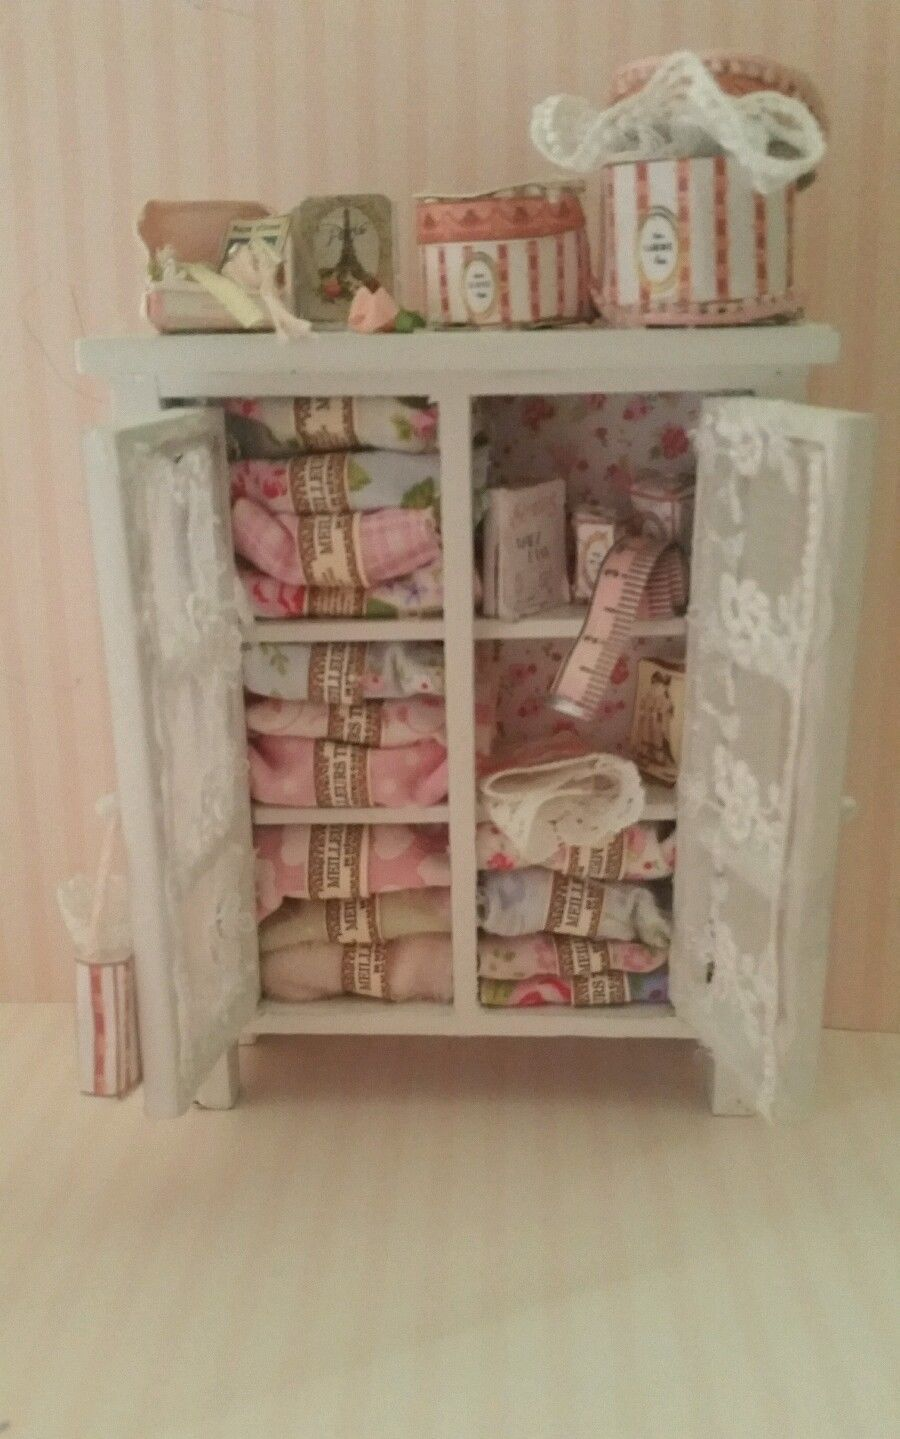 ooak 1:12 scale dollhouse miniature shabby chic sewing room